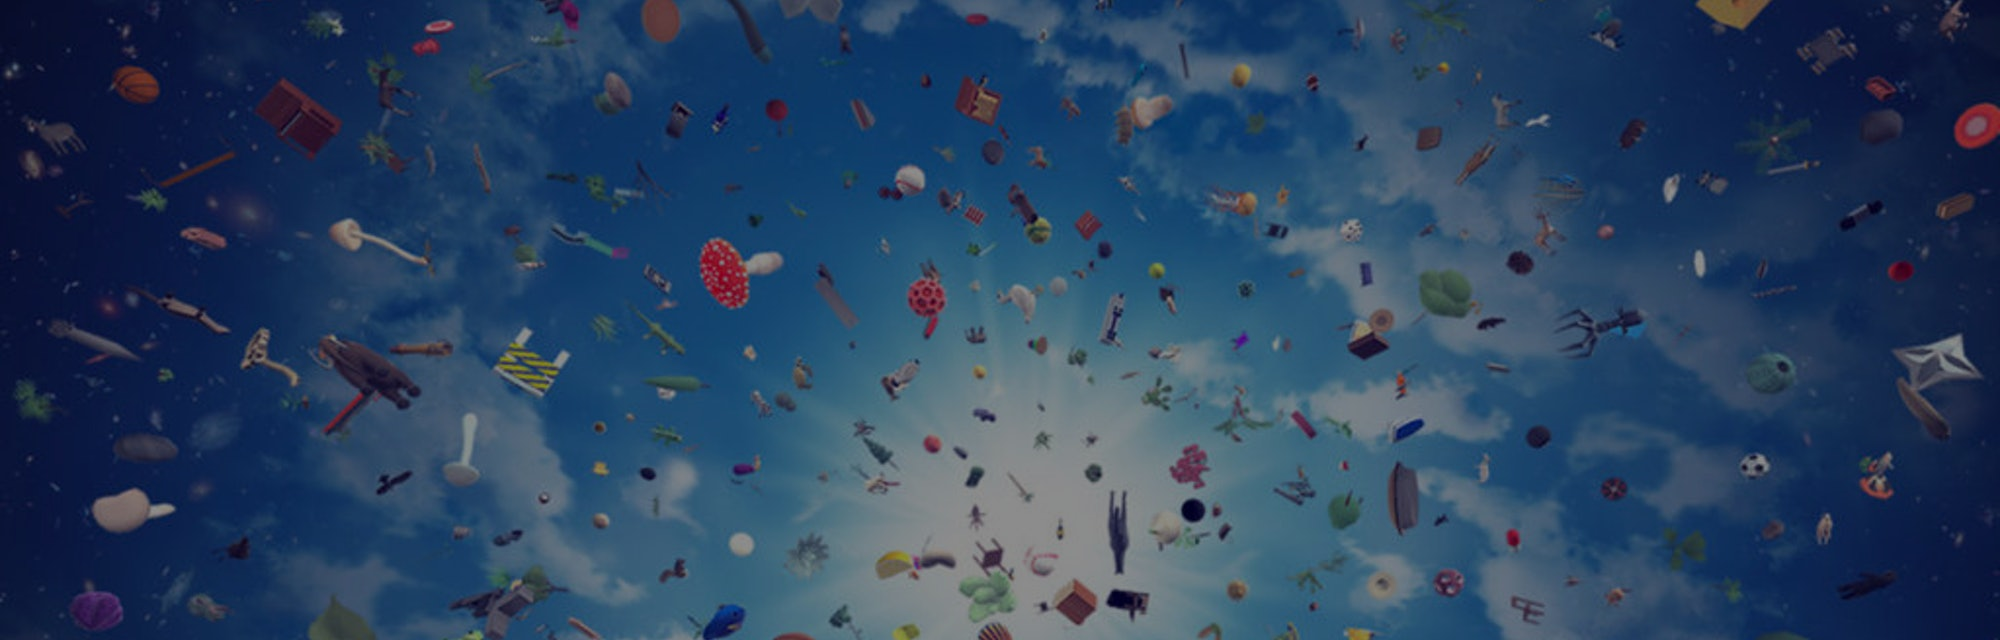 A photo of various objects, animals, plants, and more swirling in the sky.